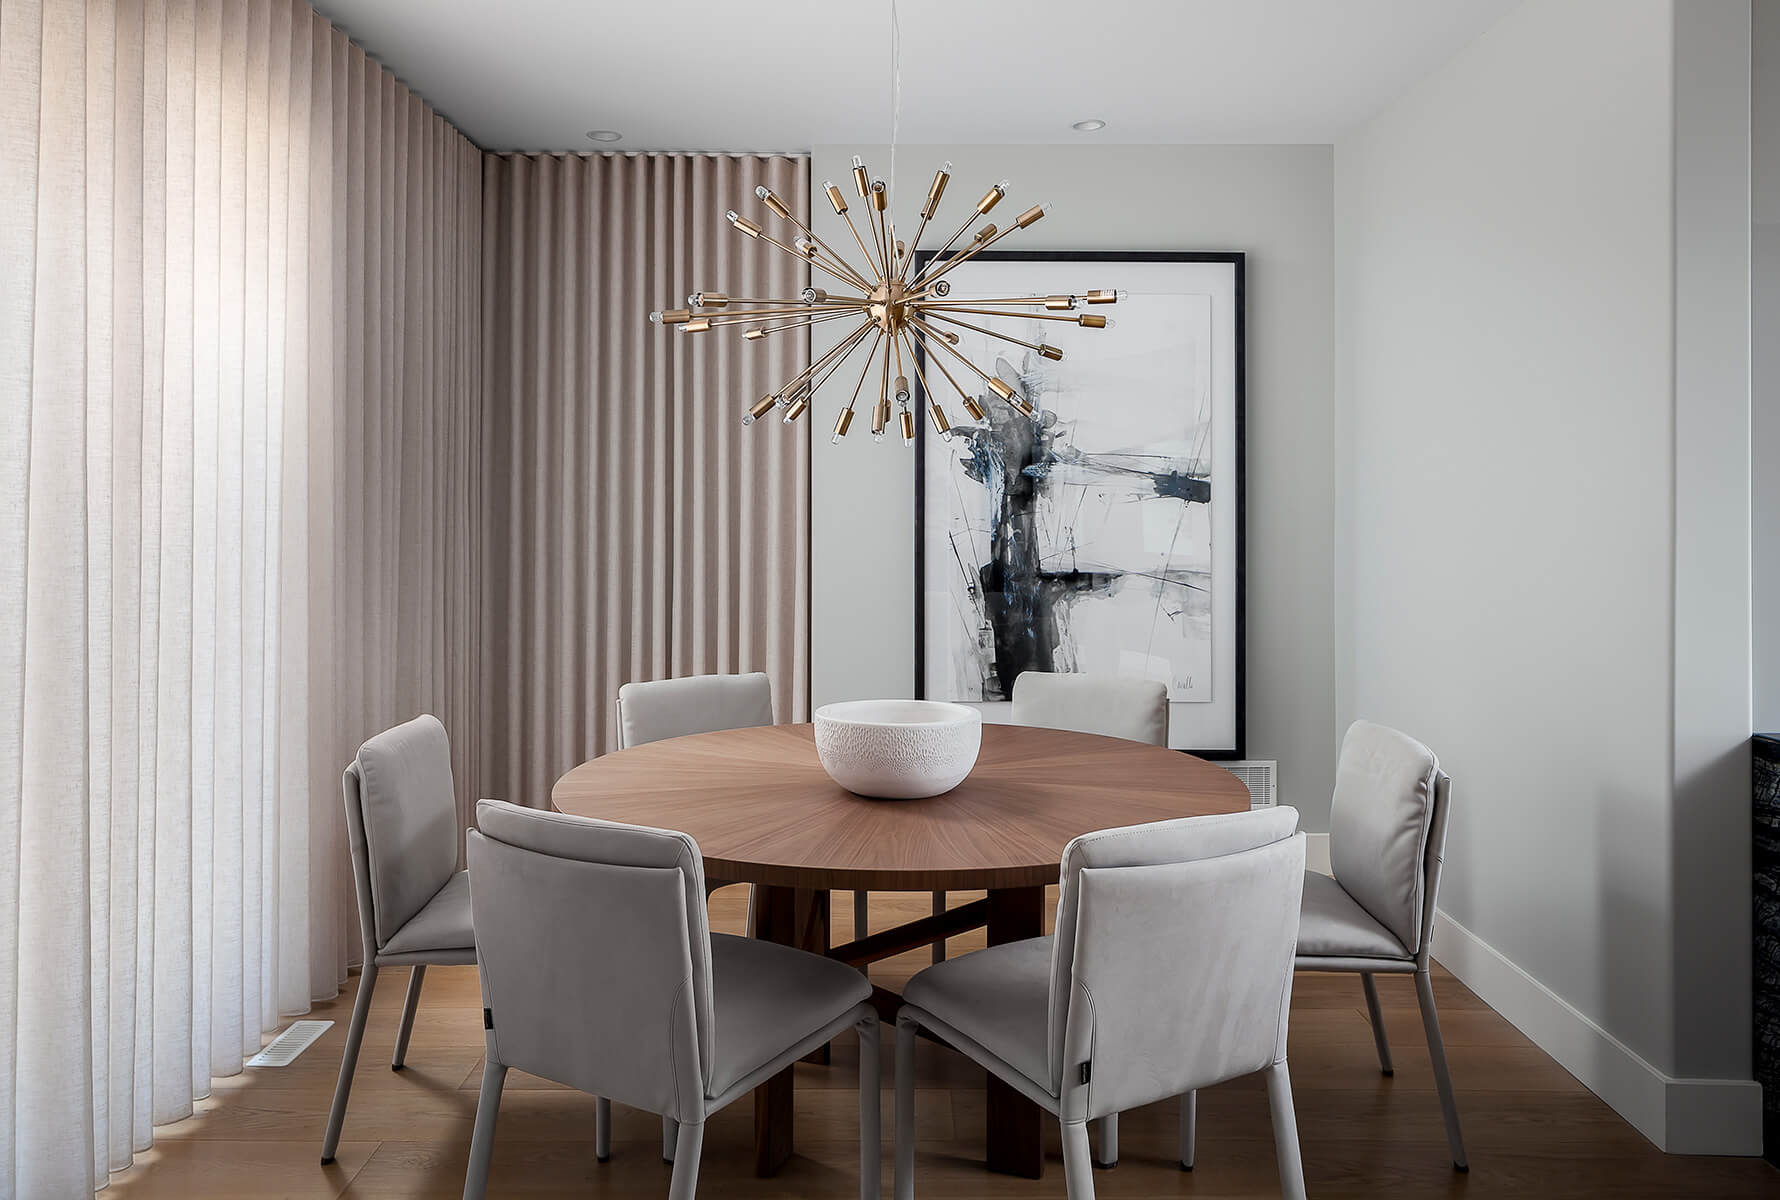 London Home Builders Millstone Homes - Home 1 Dining Room Final